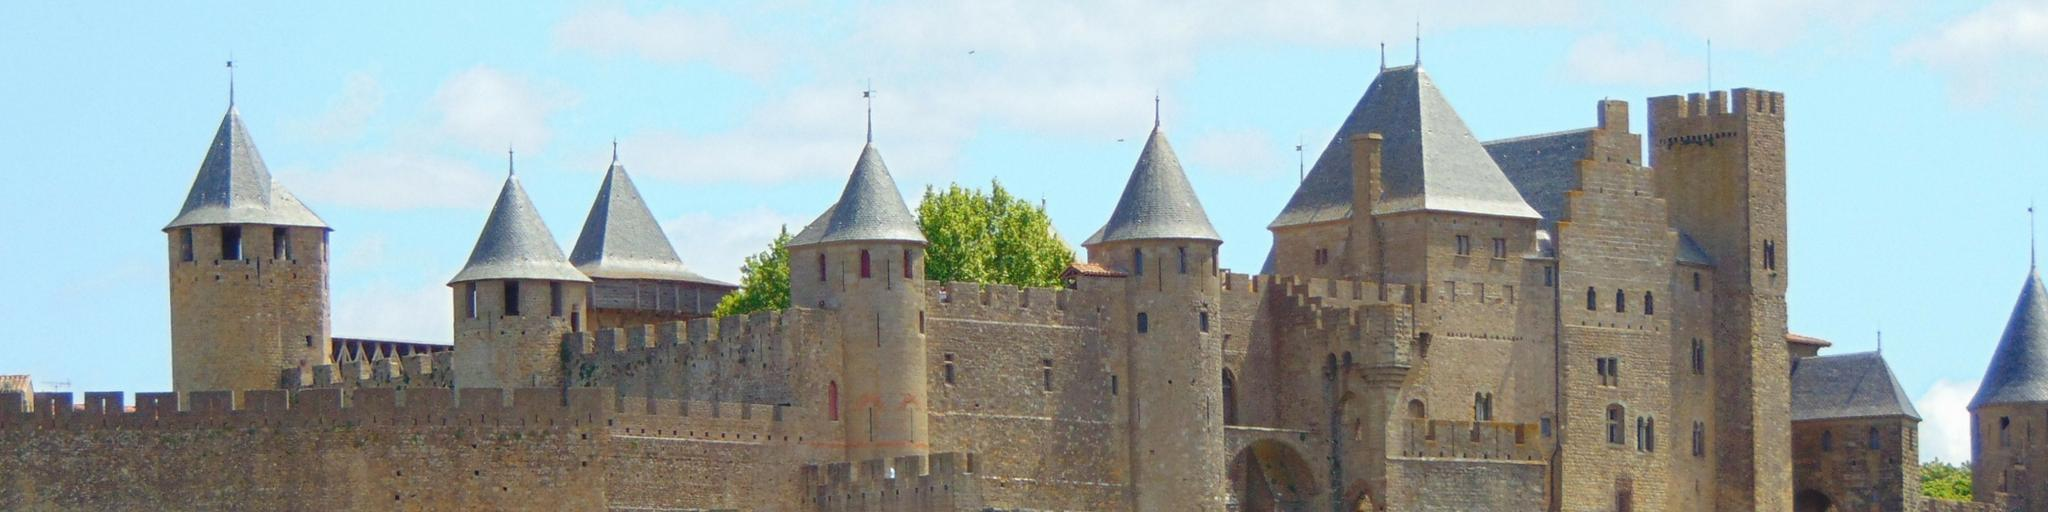 A view of the old city of Carcassonne on a sunny day, with townhouses below it.